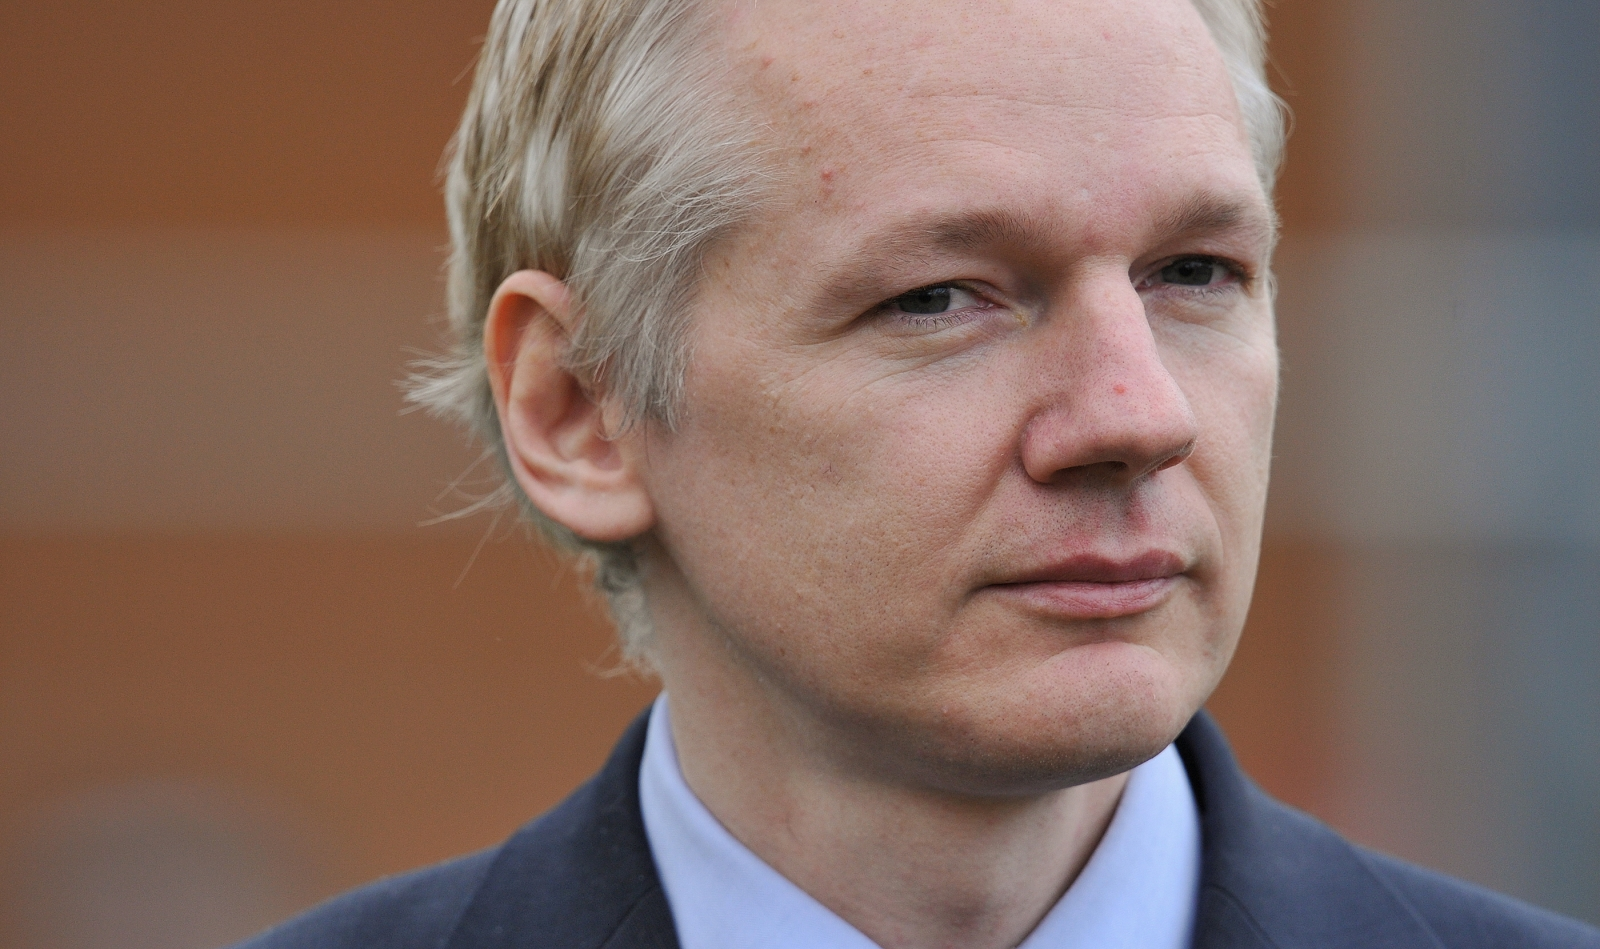 WikiLeaks founder Julian Assange lashes out at US media, Clinton and Obama administration